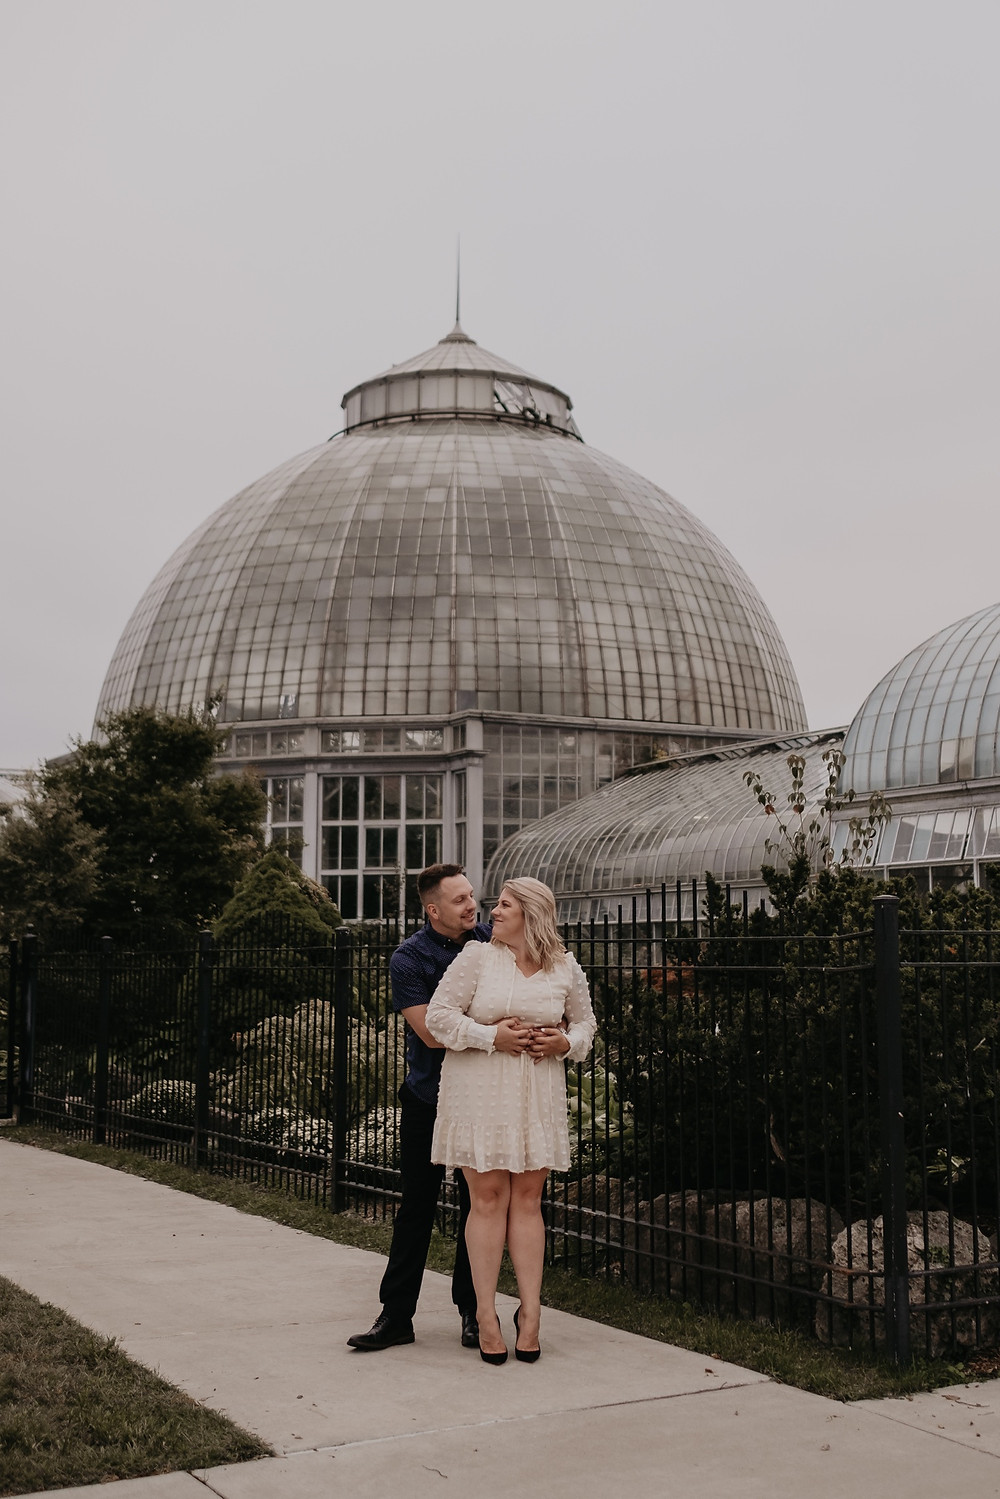 Belle Isle Detroit. Photographed by Nicole Leanne Photography.